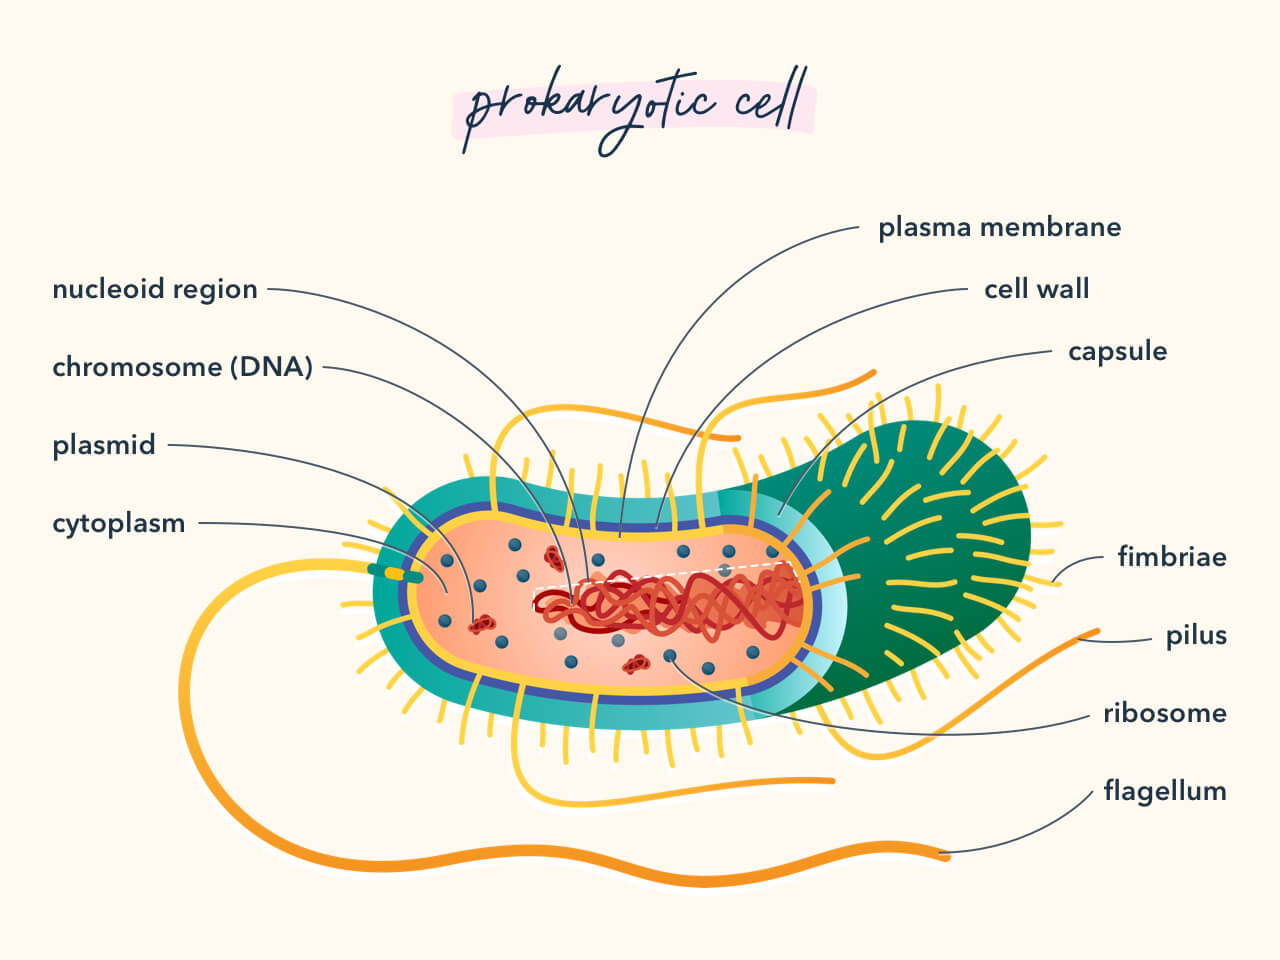 Diagram showing the components of a prokaryotic cell.